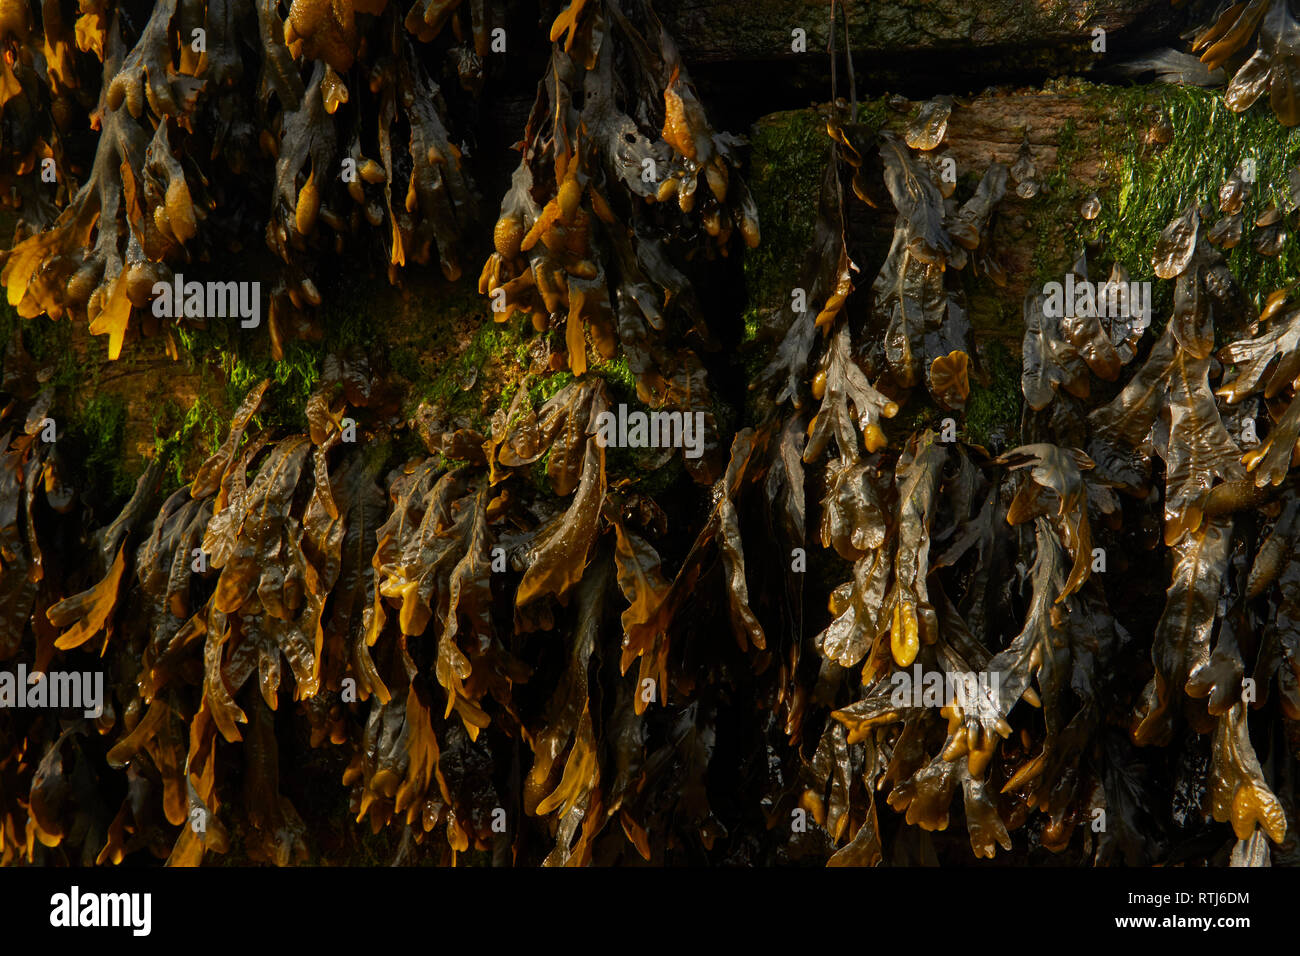 Seaweed on wooden groins at low tide on the Kent coast, England, United Kingdom, Europe - Stock Image